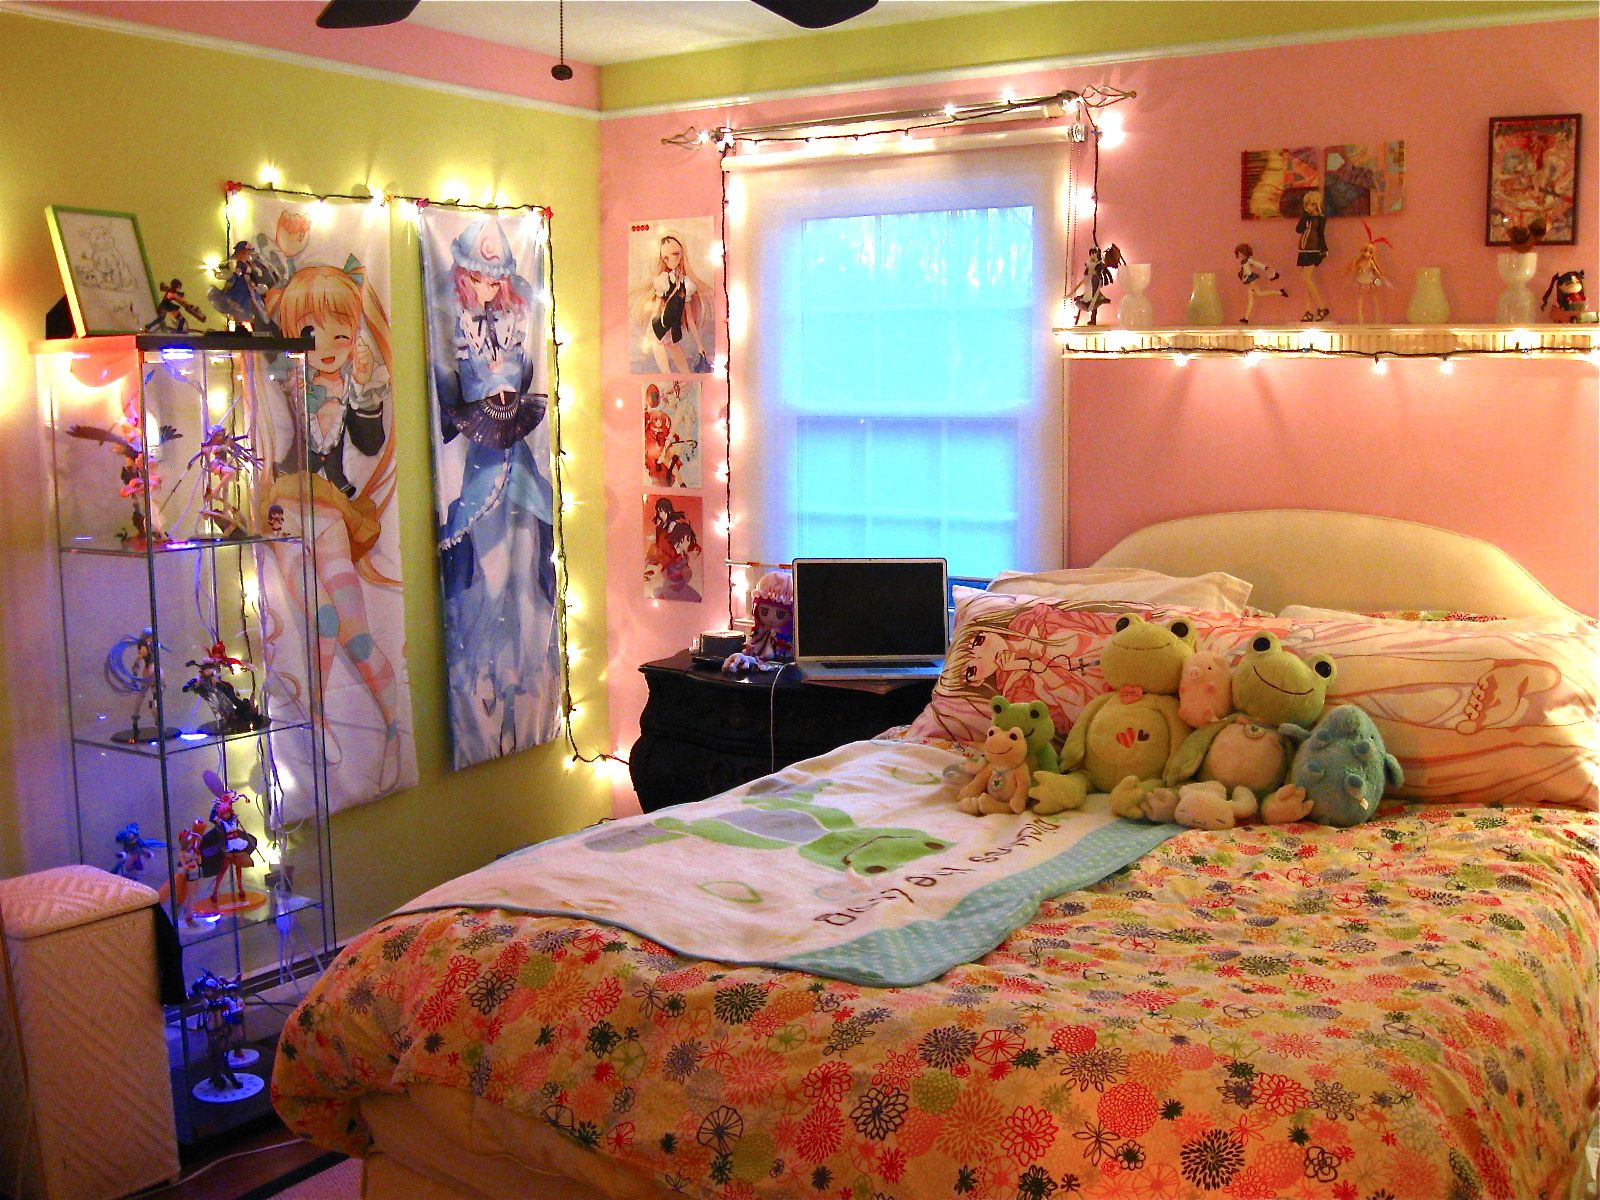 Anime Schlafzimmer Girly Anime Room I Like It But I Think I Can Do Better